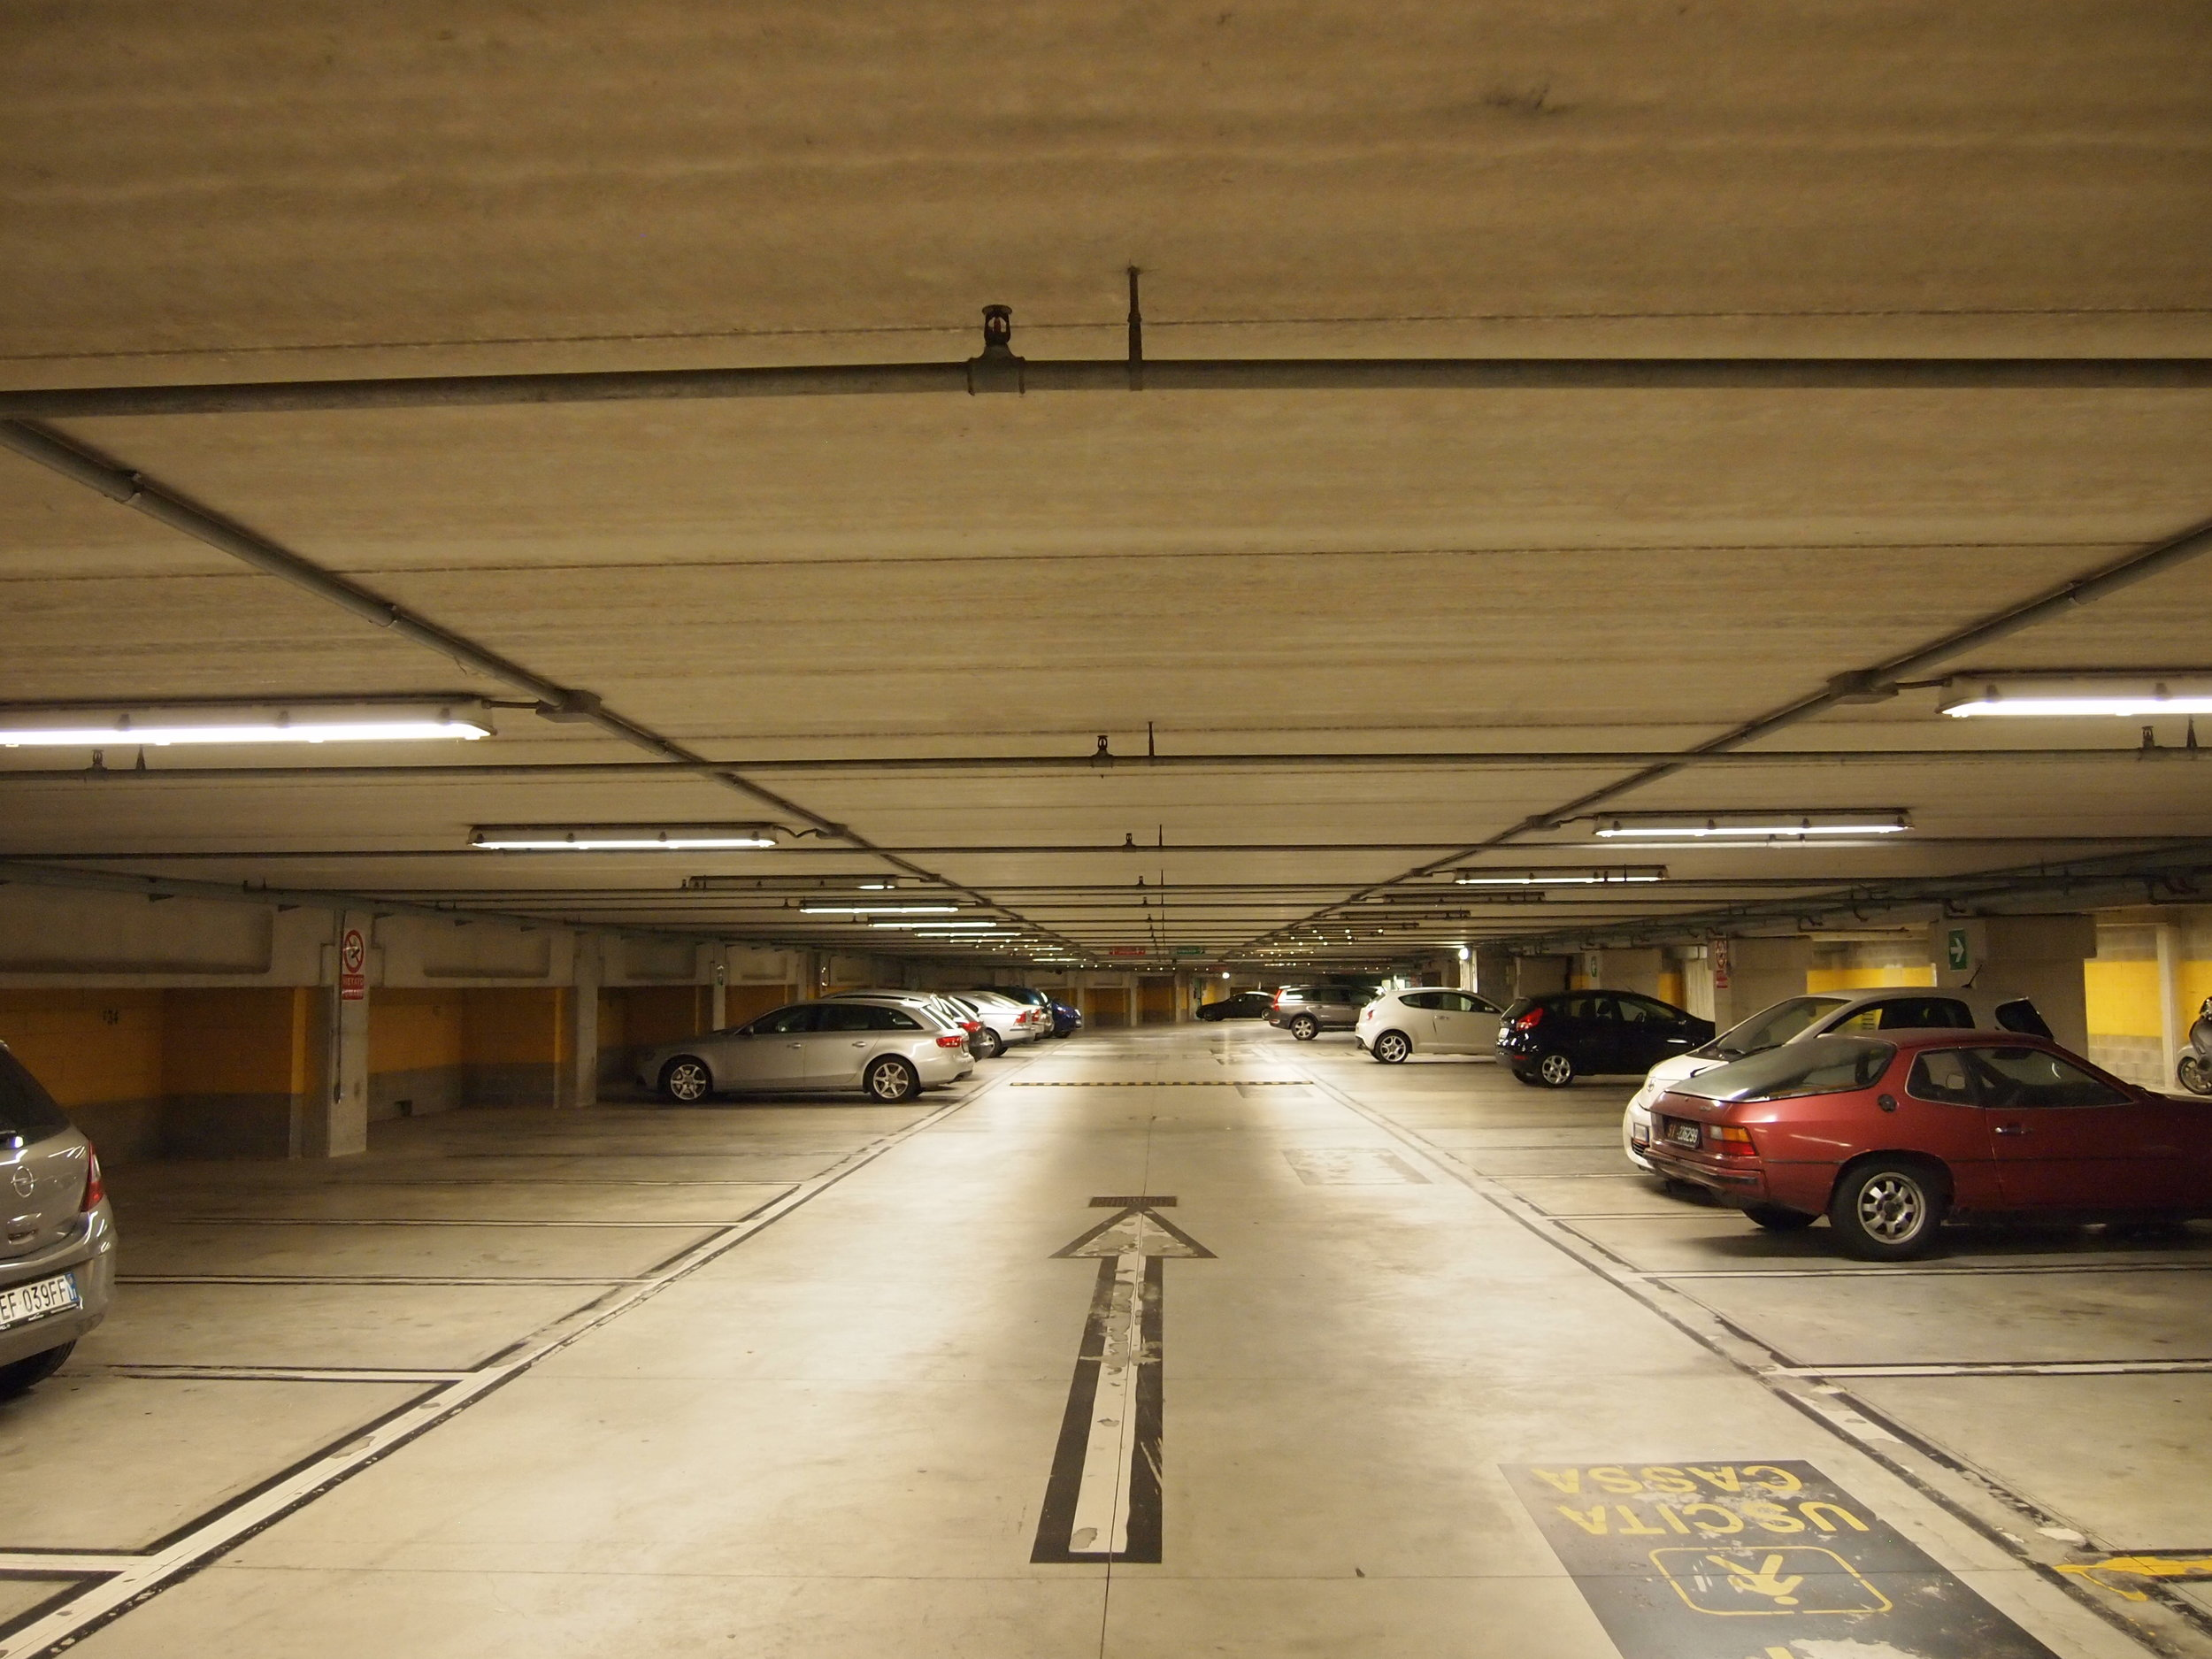 porta-tufi-parking-garage-siena_8181253359_o.jpg